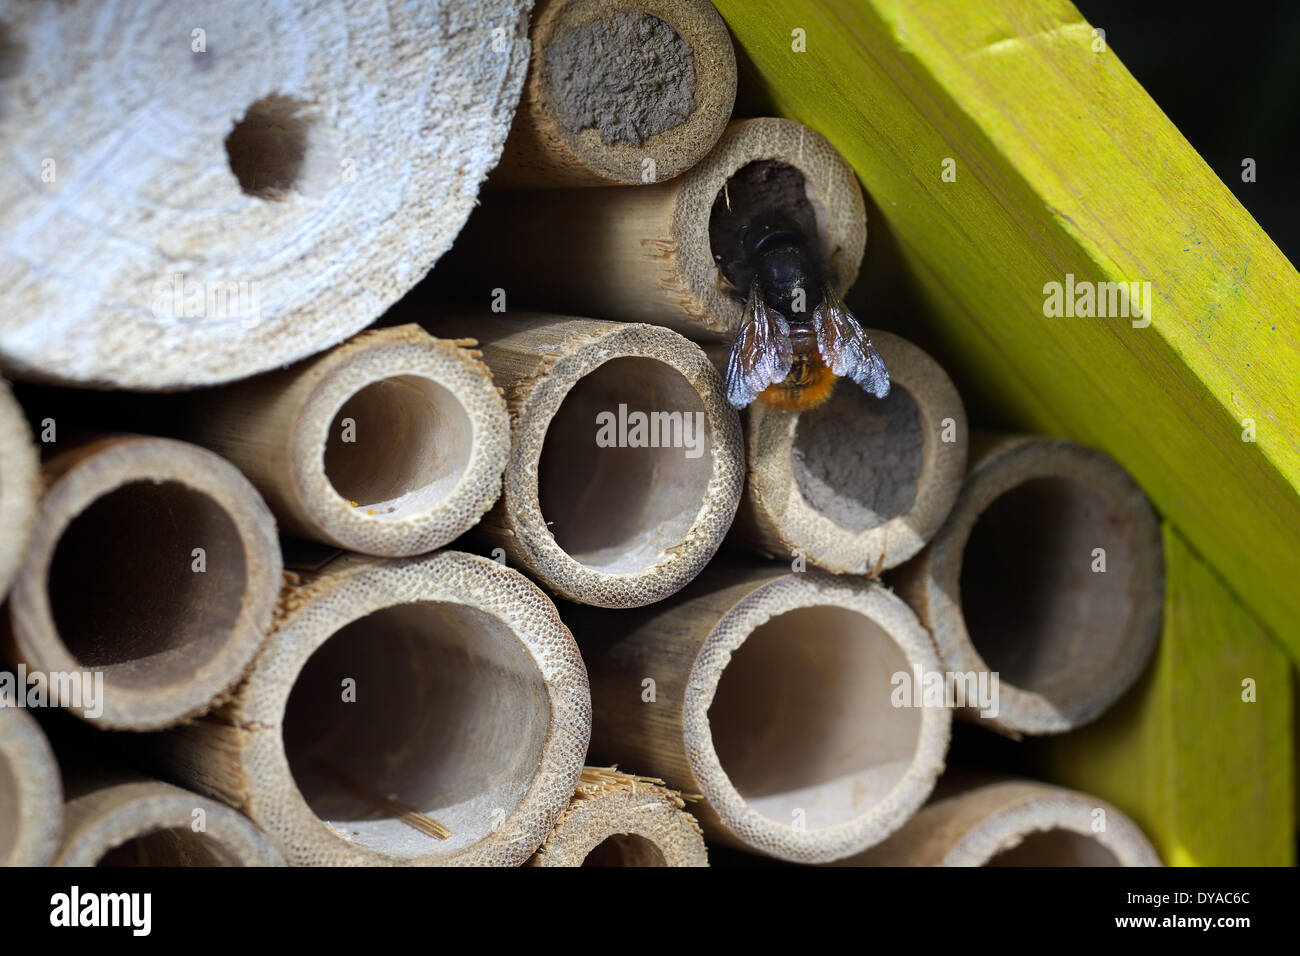 A wild bee at an insects nesting box, 09.04.2014 - Stock Image